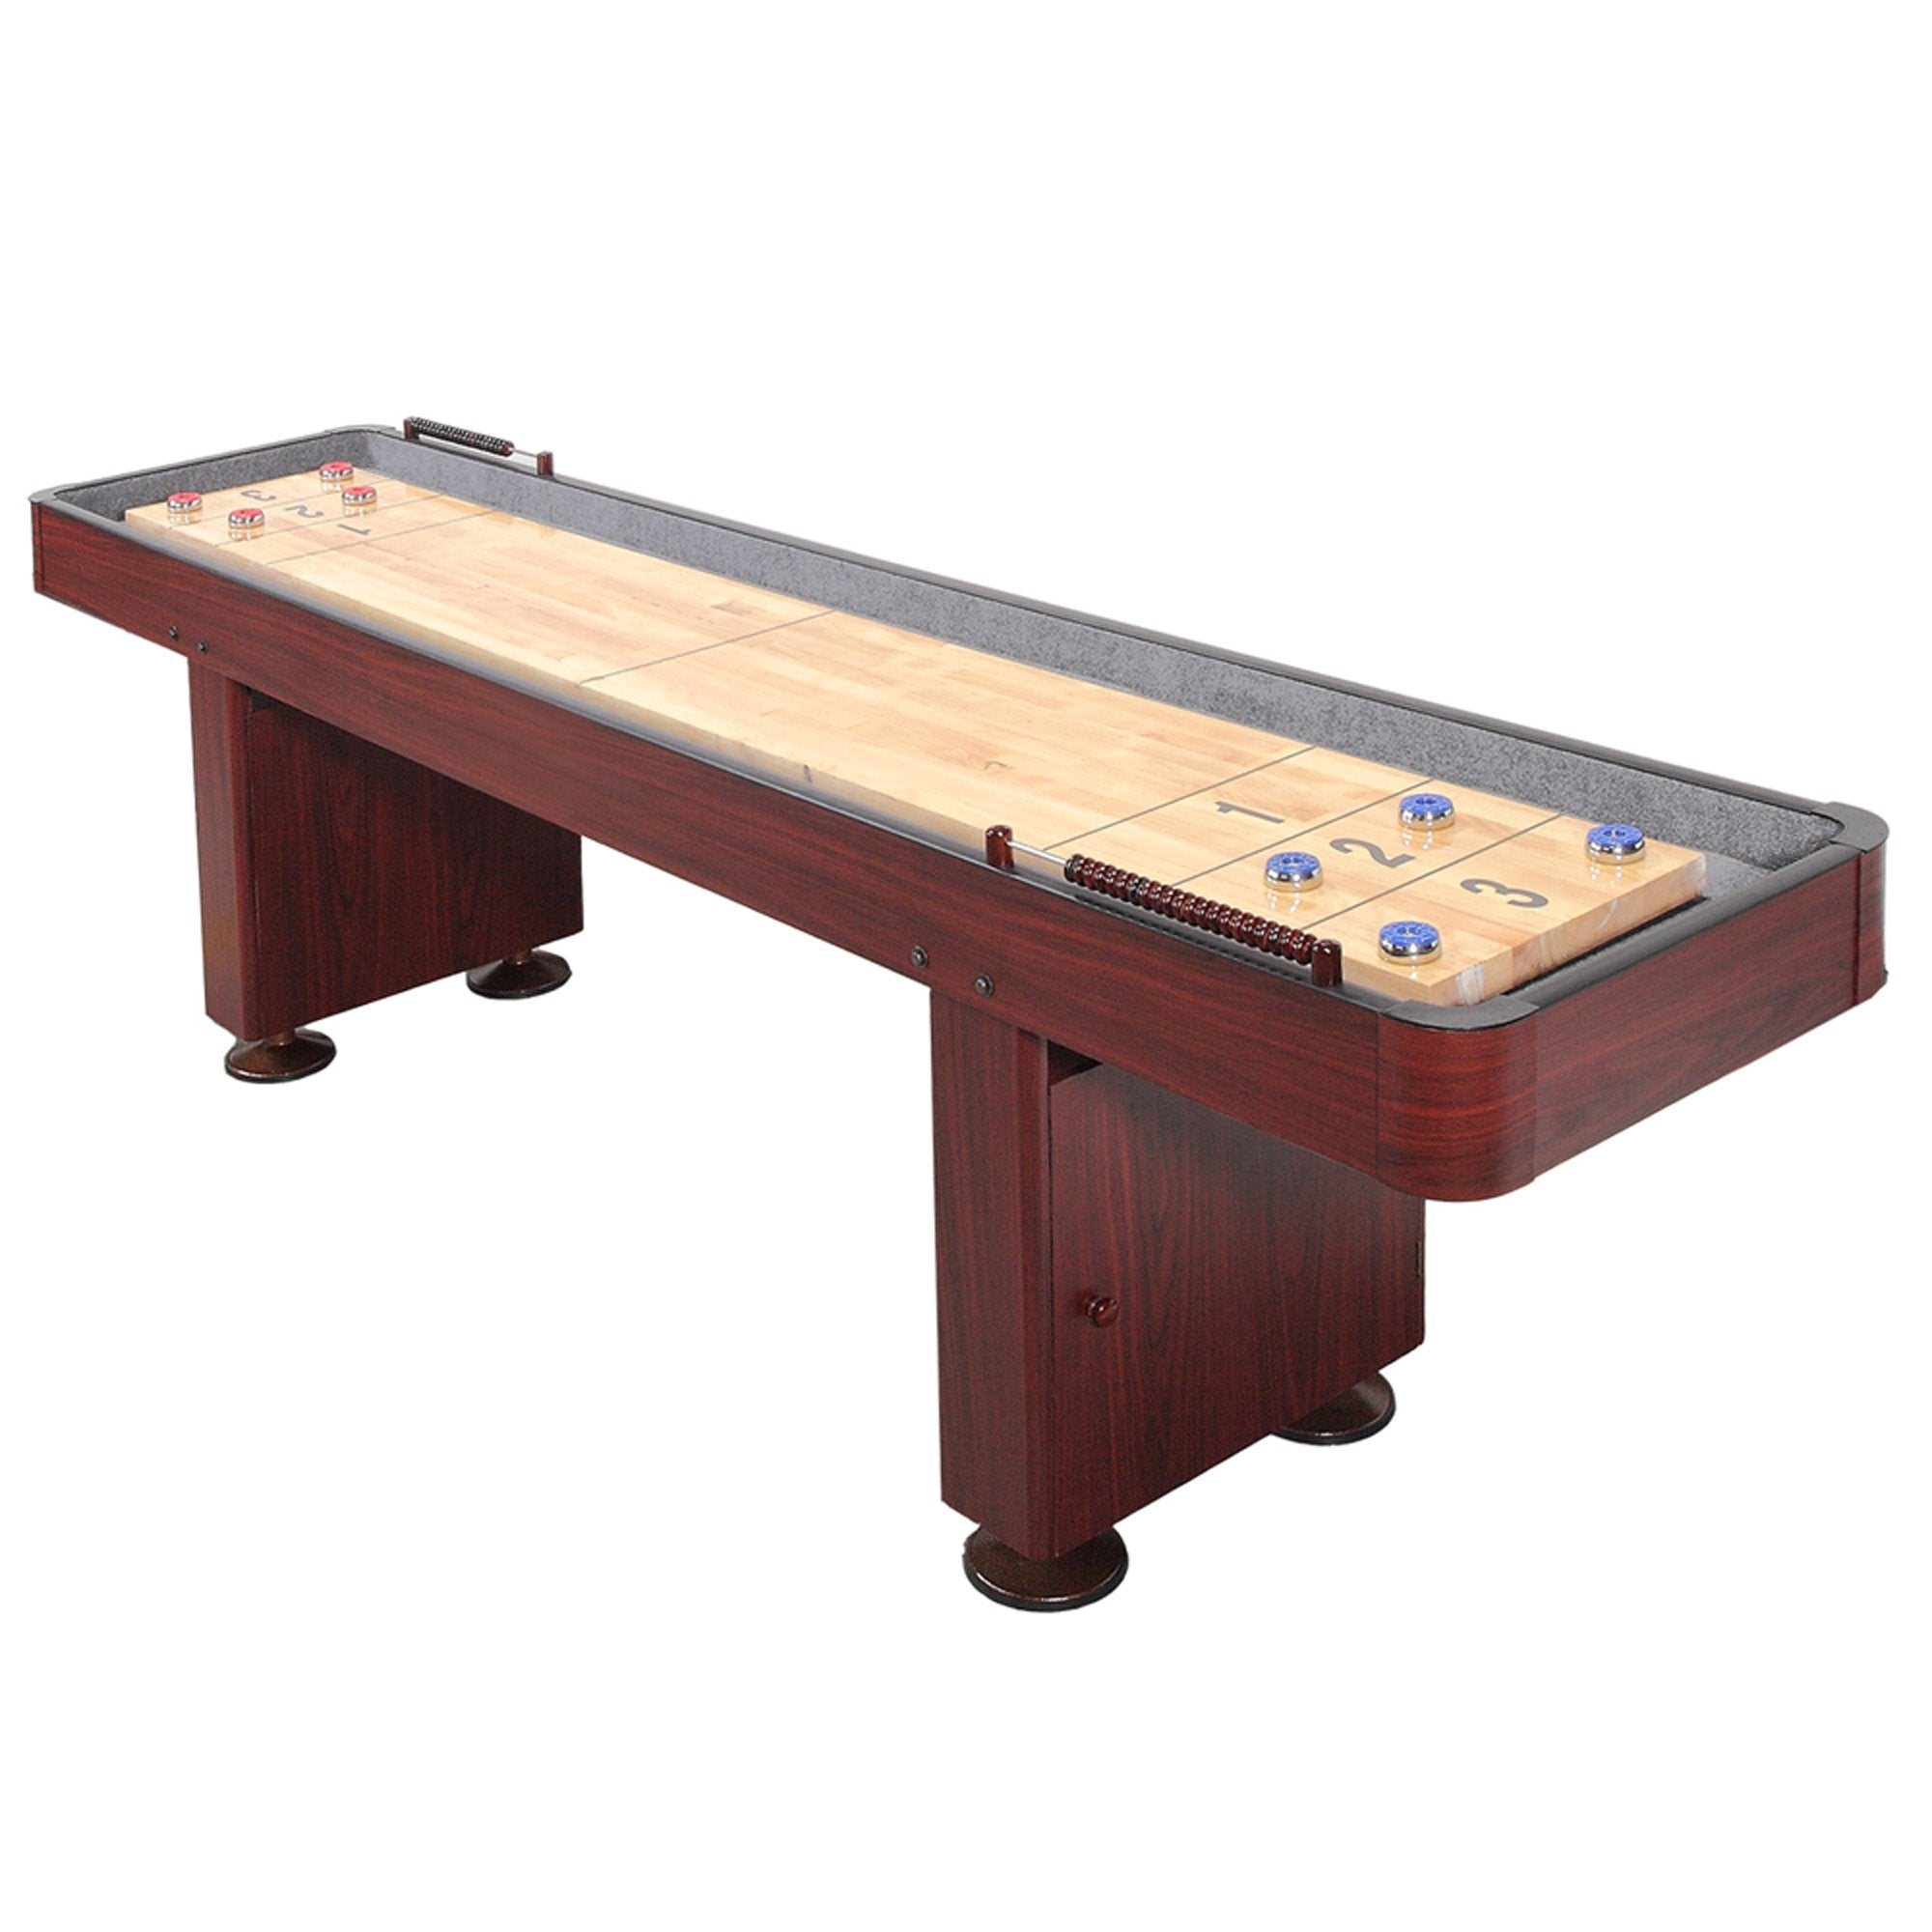 Hathaway Challenger Dark Cherry 9ft Shuffleboard Table - Gaming Blaze